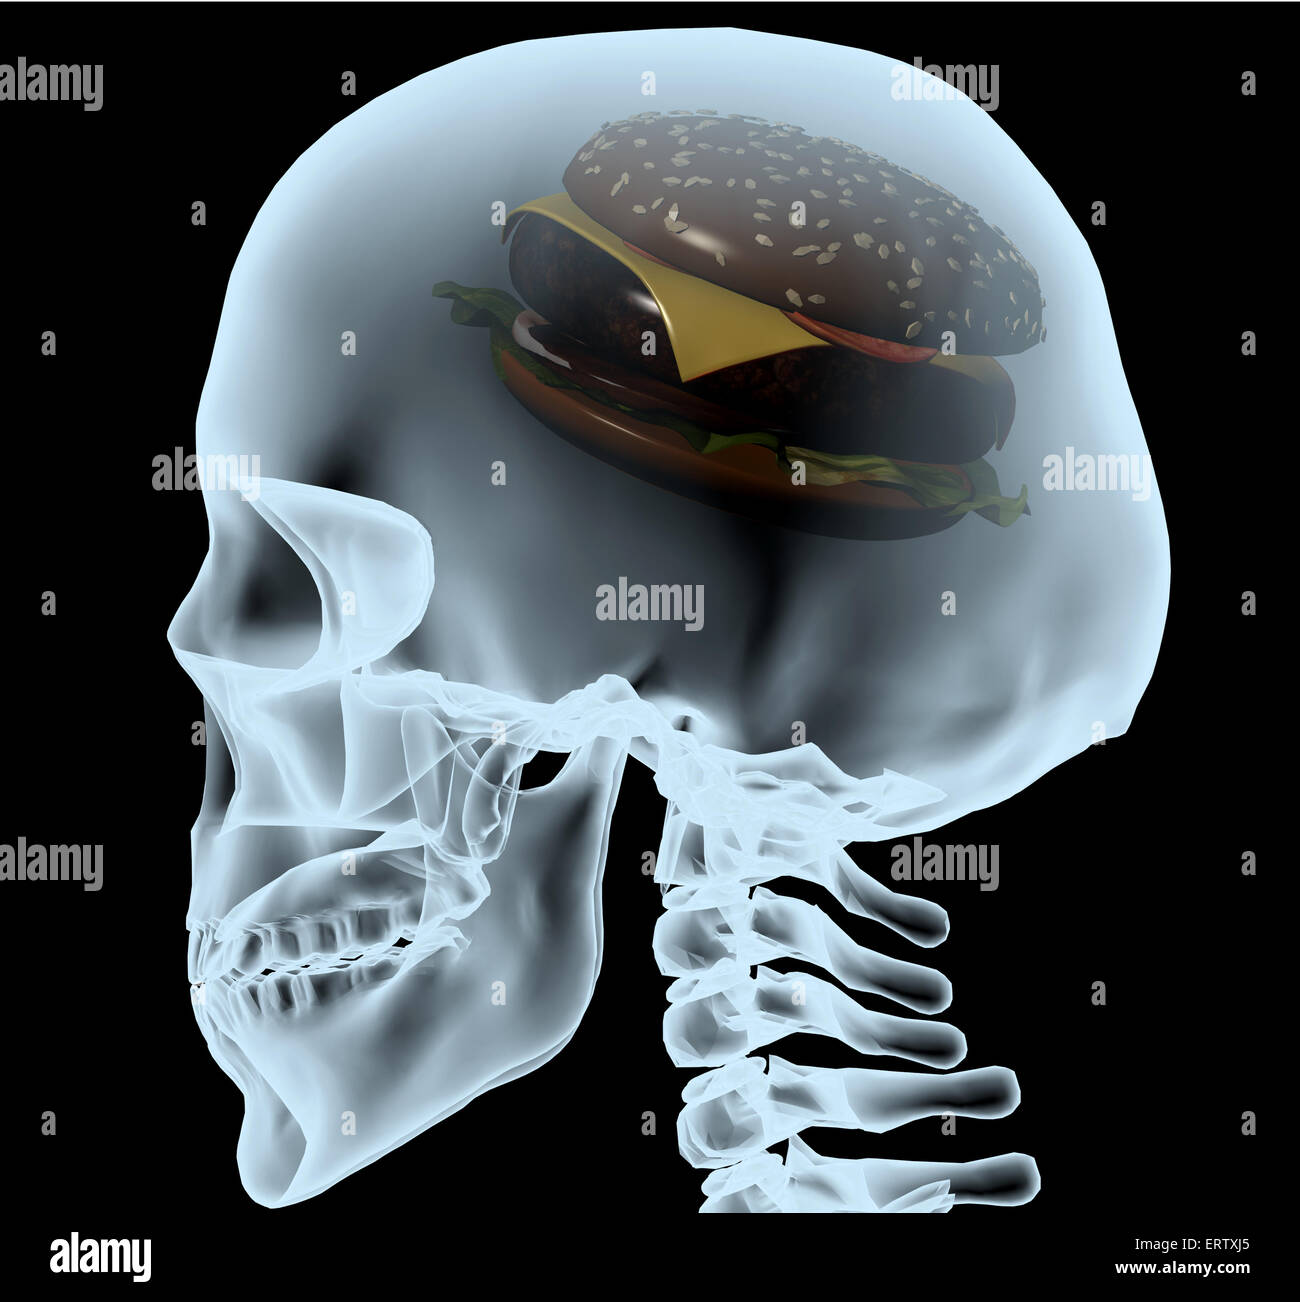 X-ray of a head with the burger instead of the brain, 3d illustration - Stock Image